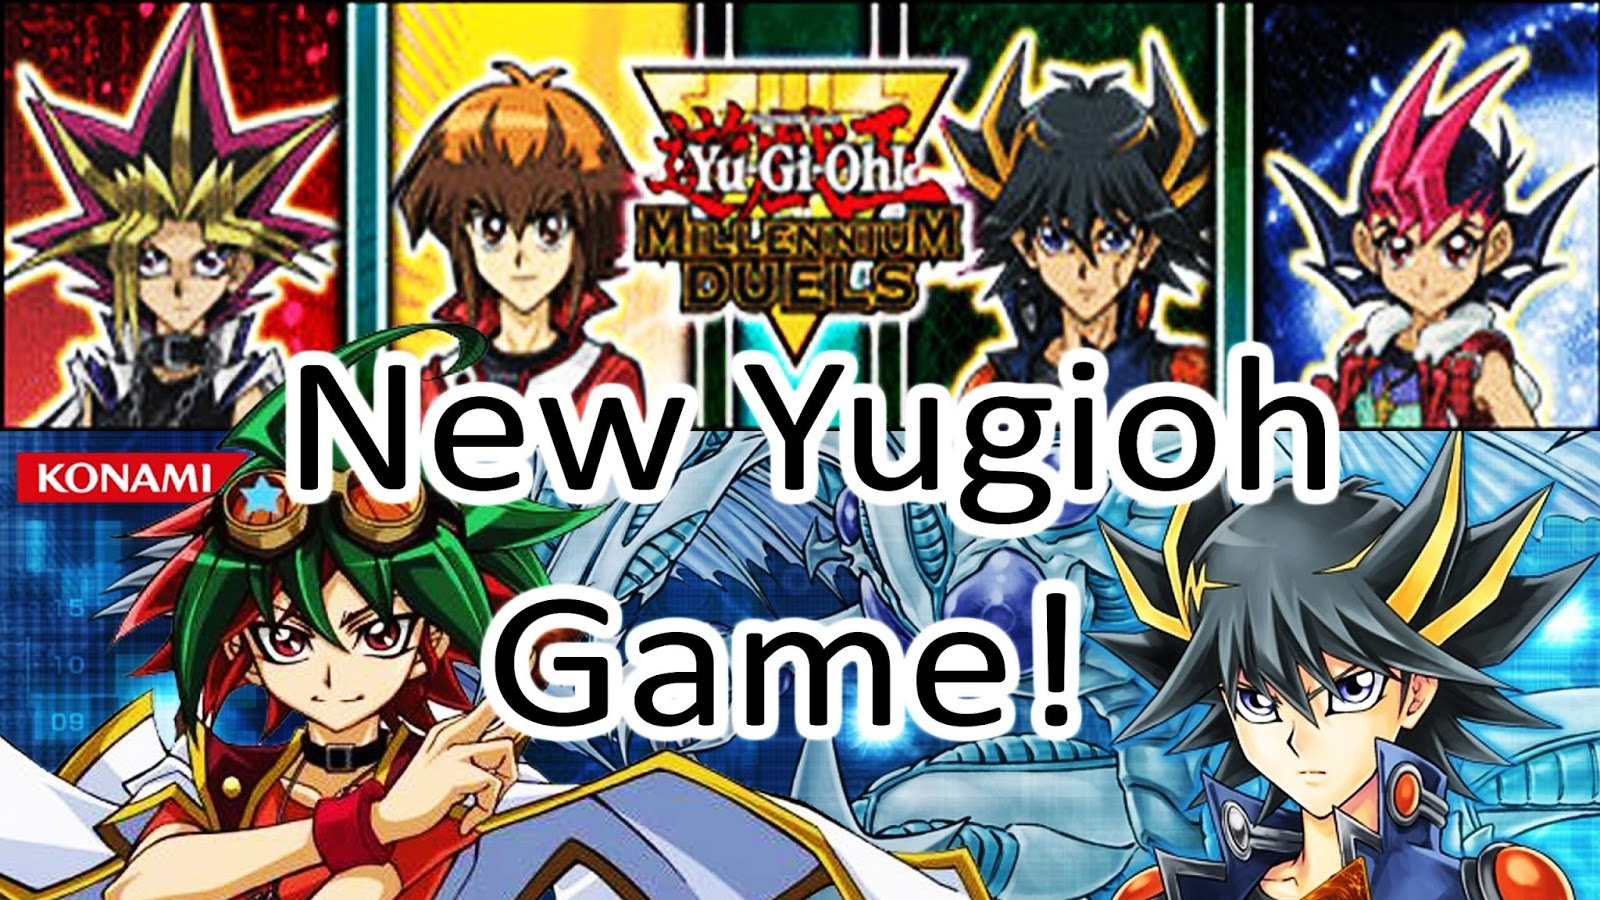 Yu-Gi-Oh Duel Generation for PC - Free Download